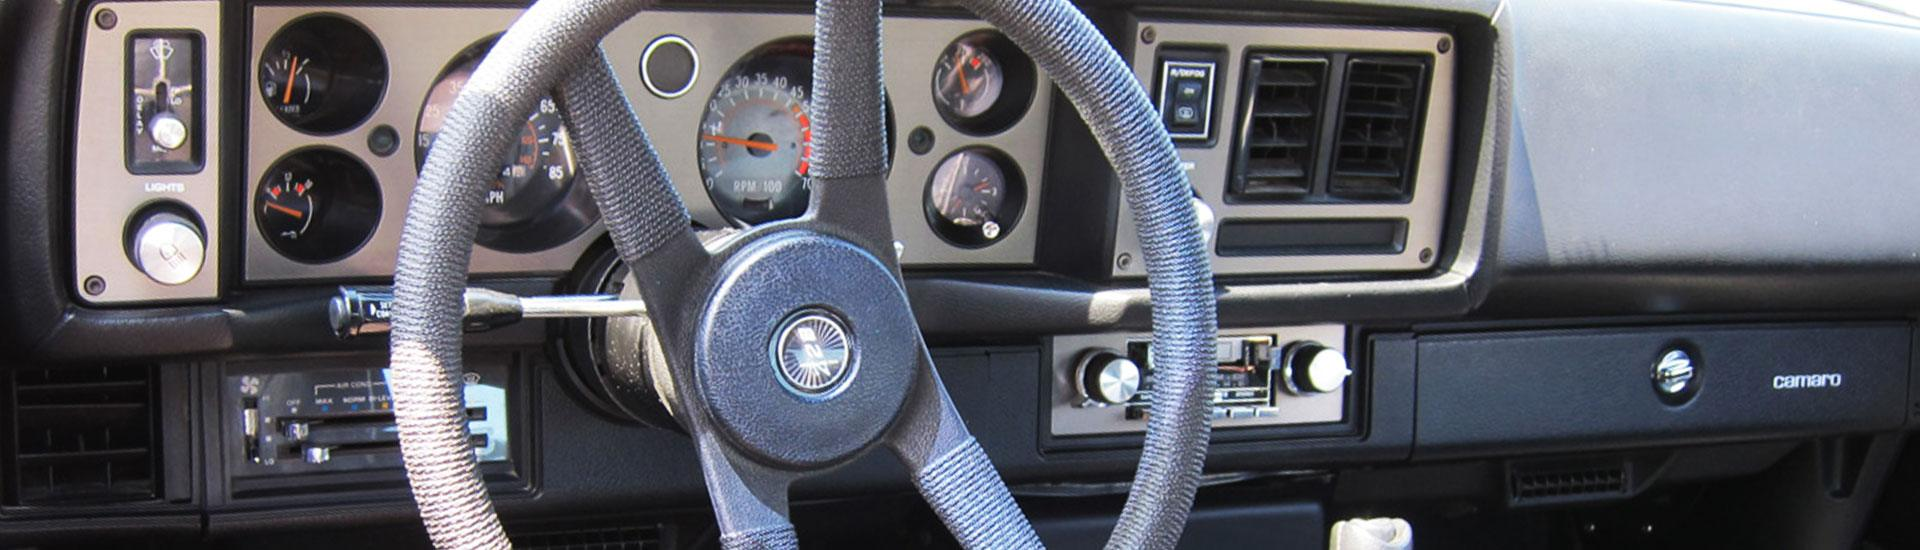 1980 Chevrolet Camaro Dash Kits